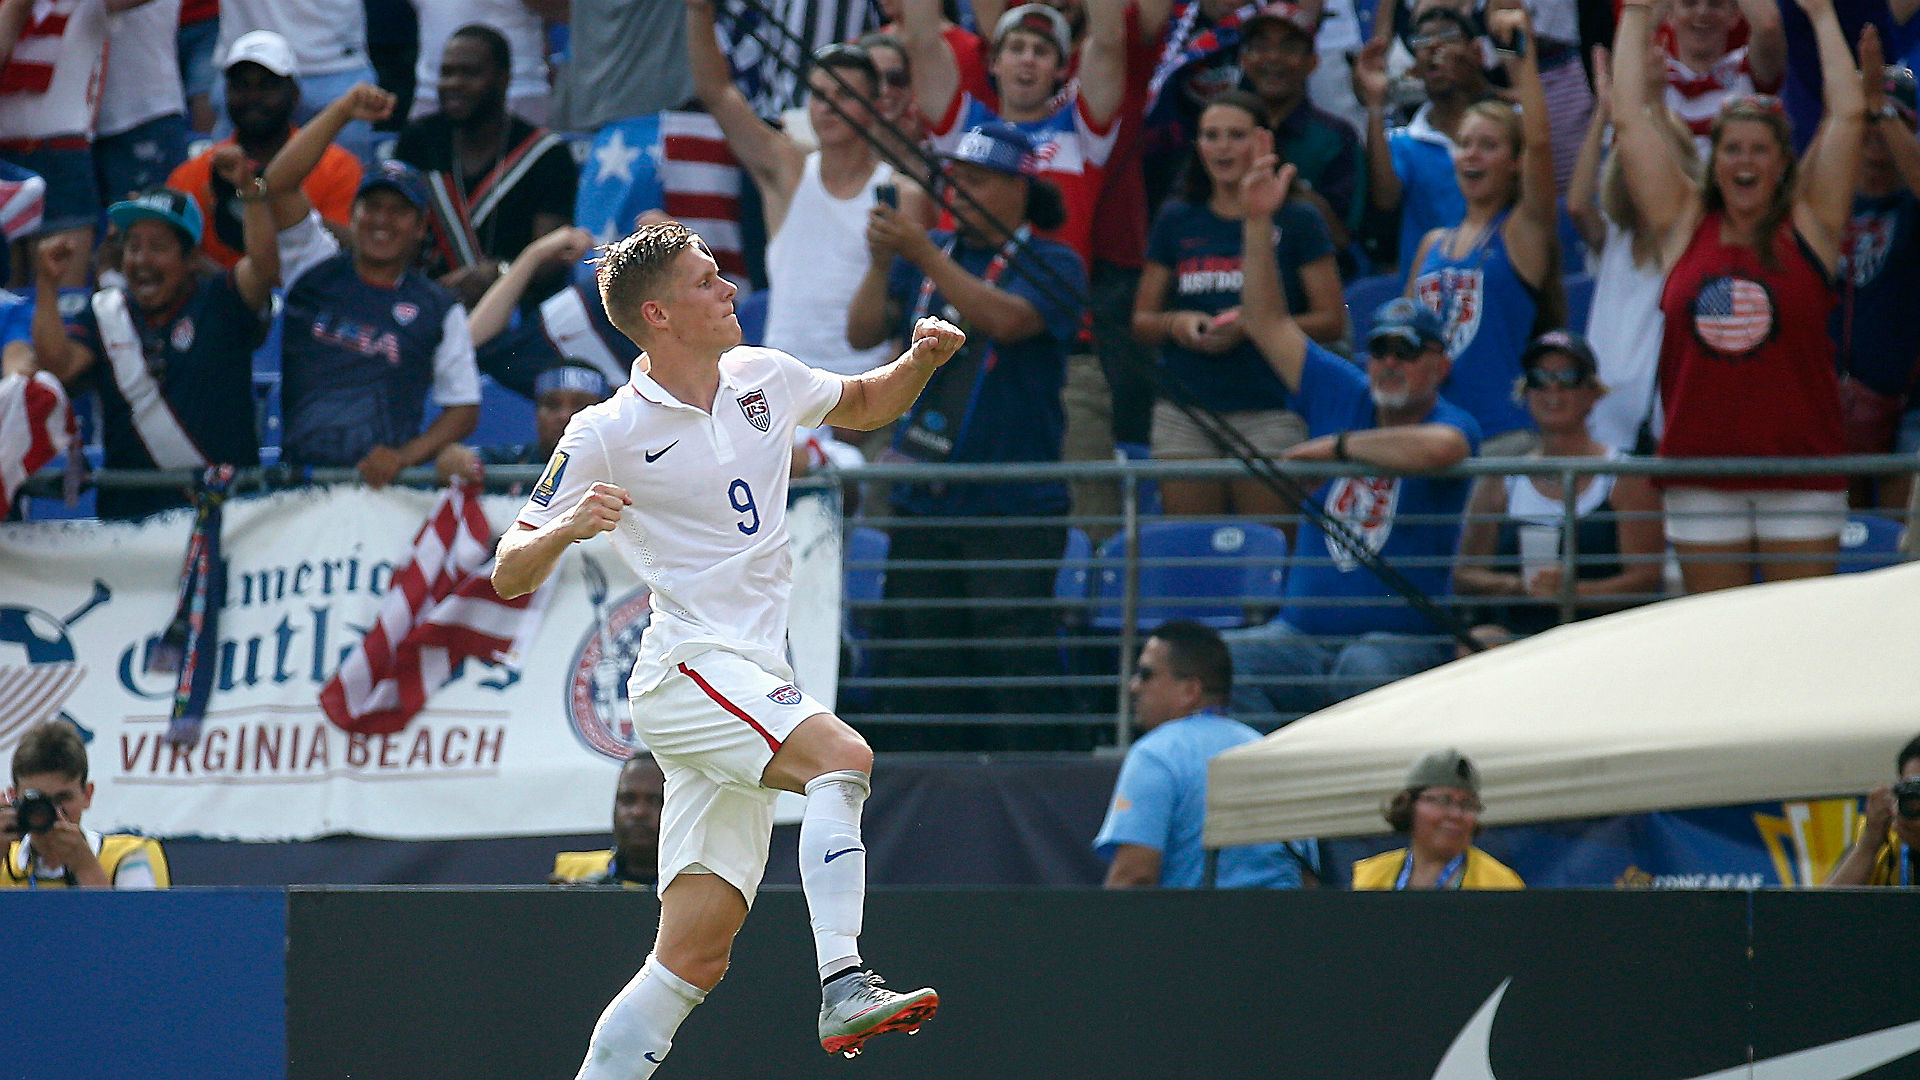 USA vs. Jamaica odds and pick – Americans in fine form ahead of Gold Cup semis